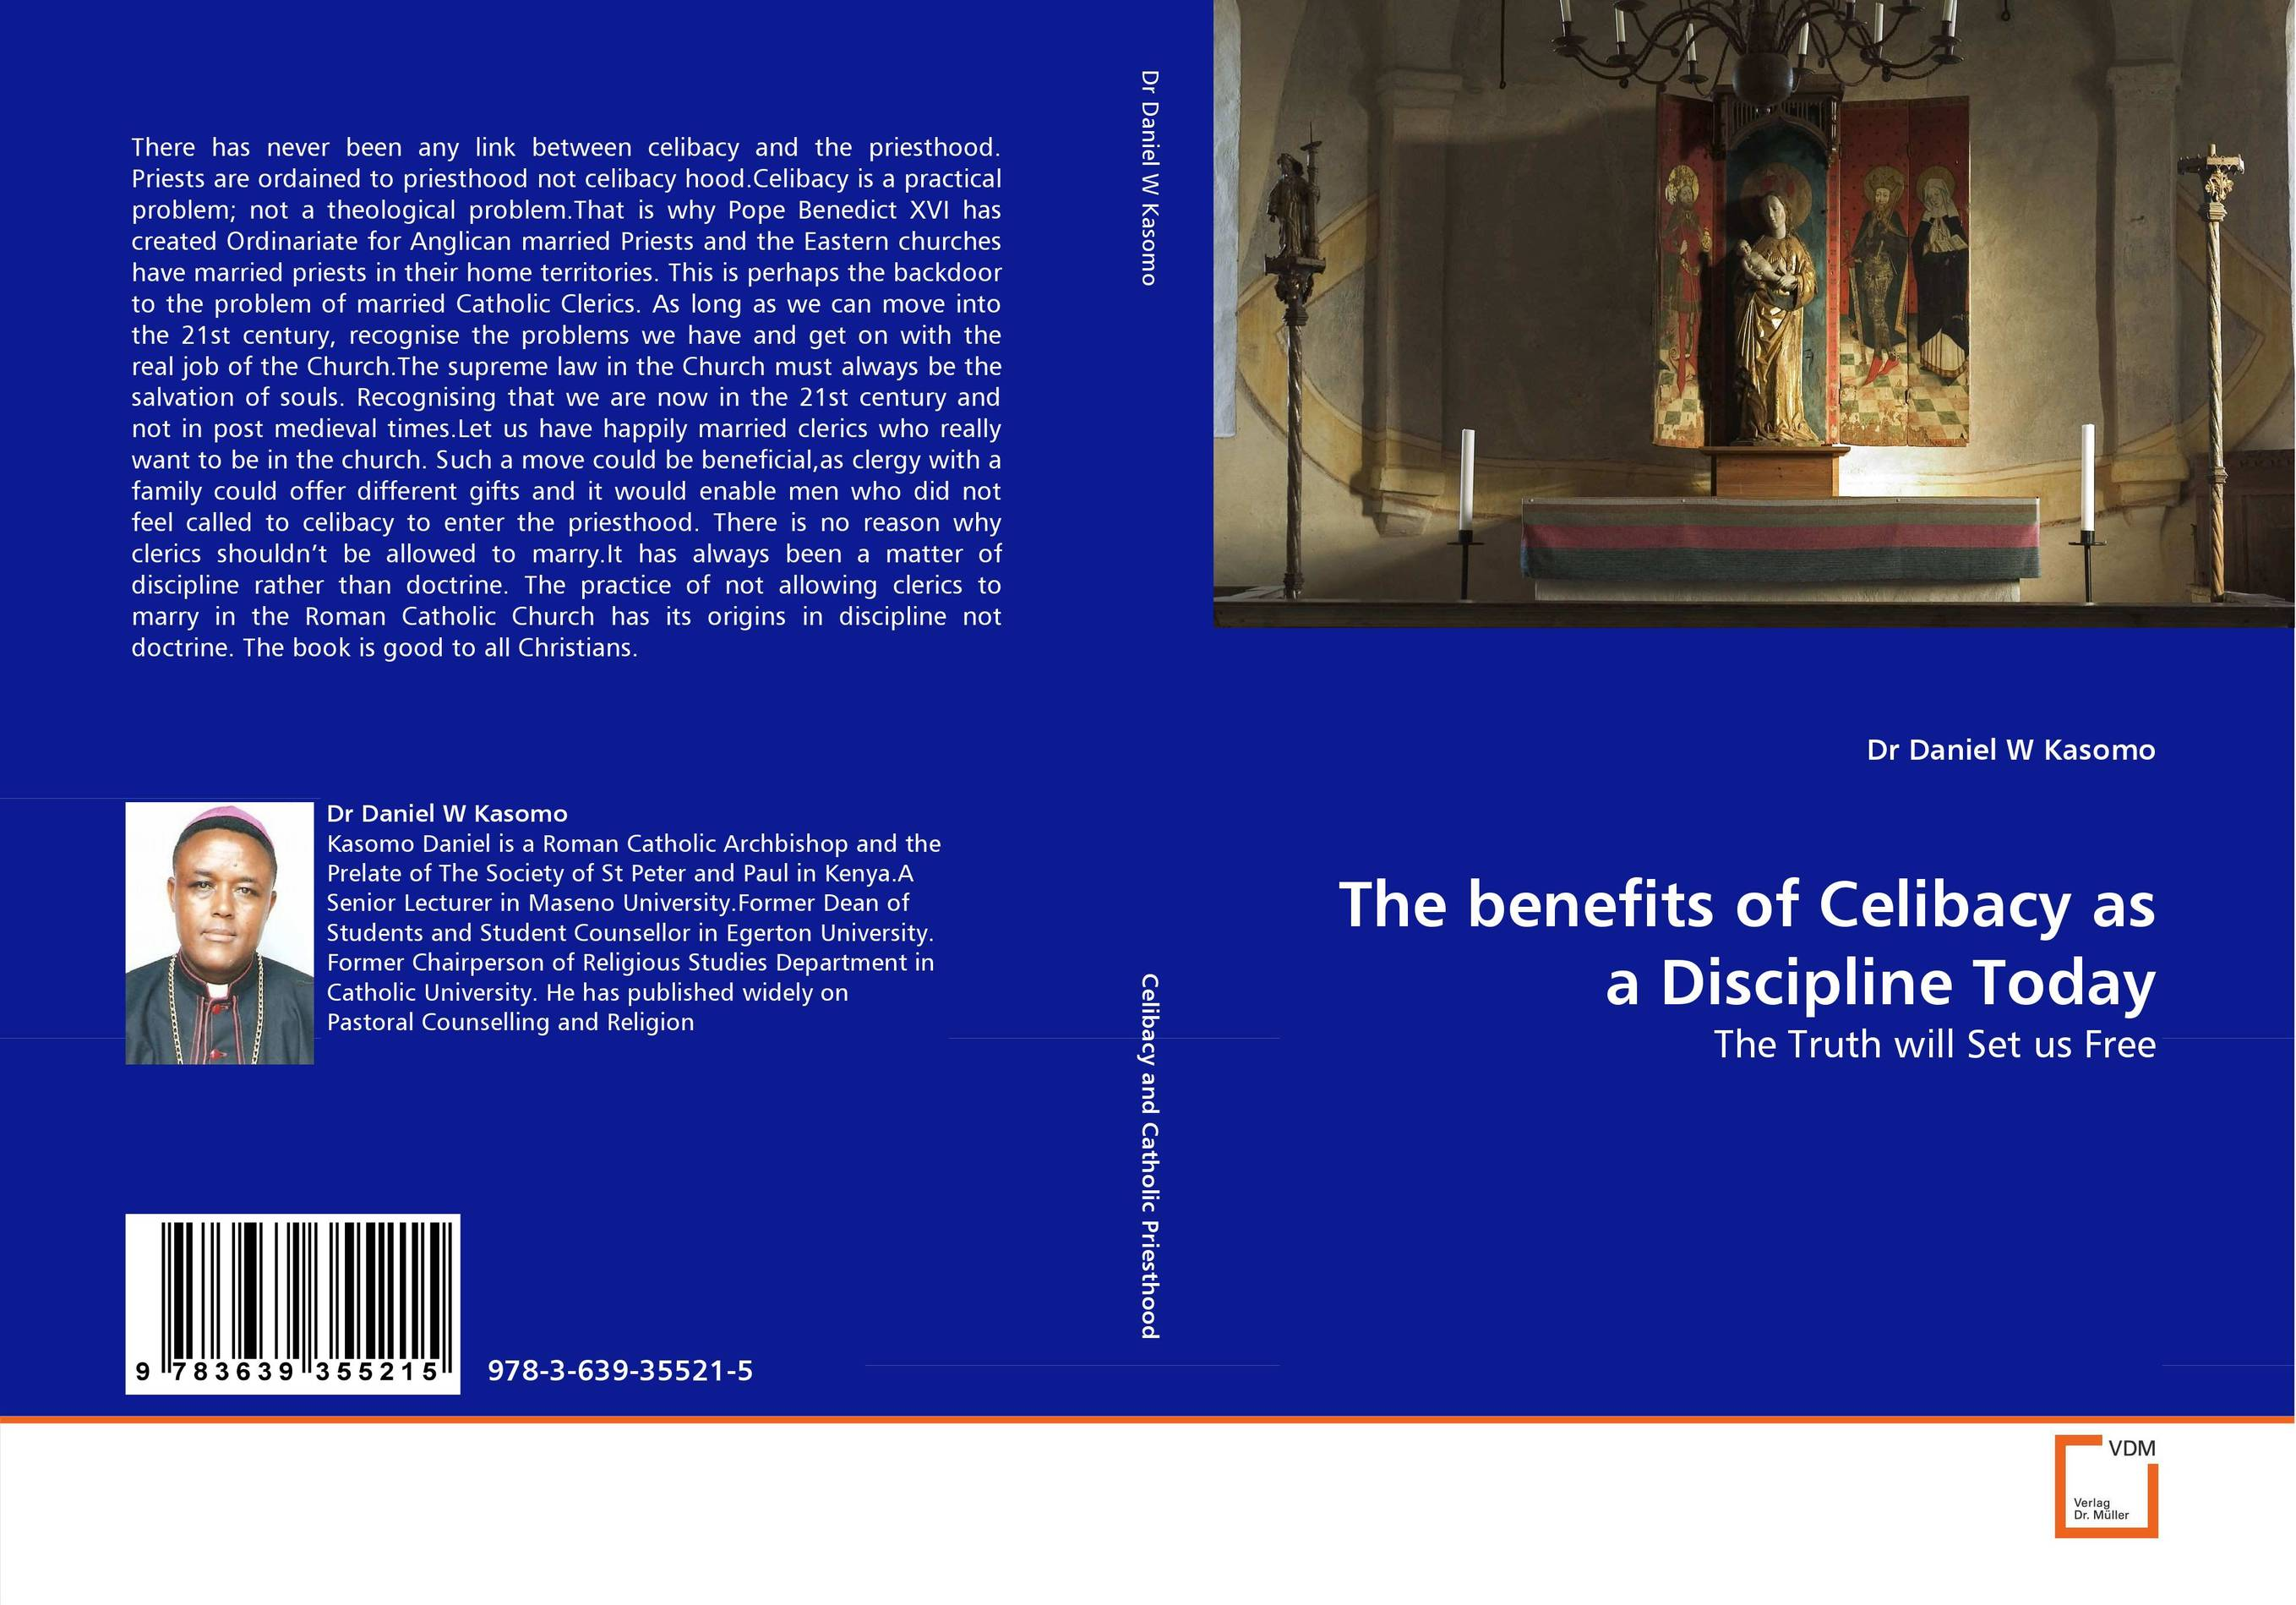 The benefits of Celibacy as a Discipline Today married to the game